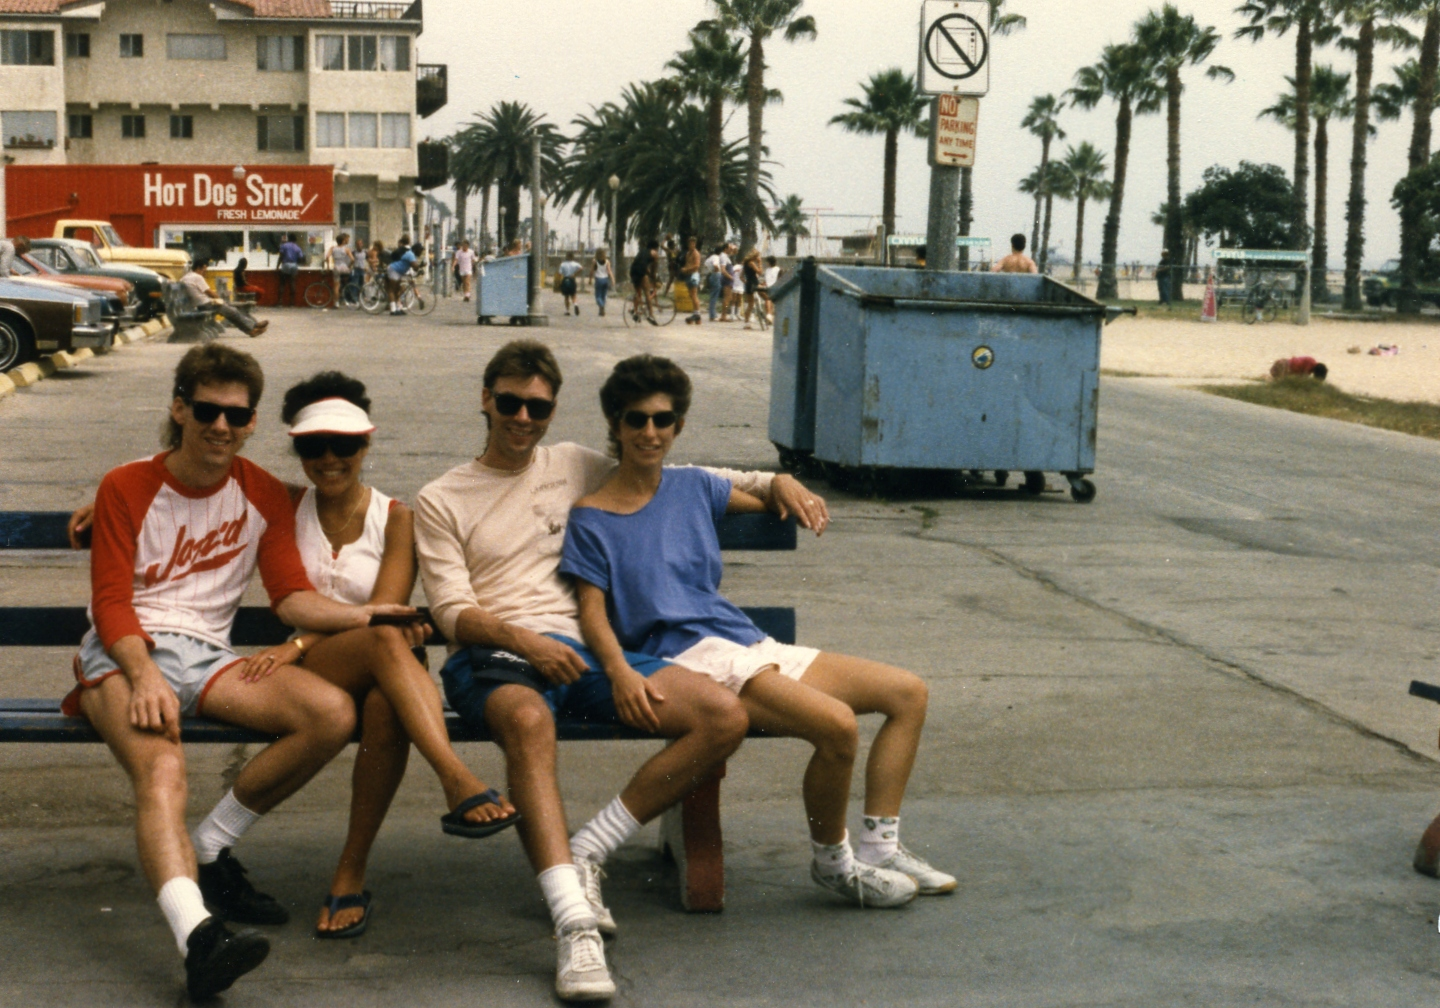 Fred & Holly Stickley, John & Pam Mahon at Venice Beach, sometime in the 1980's.